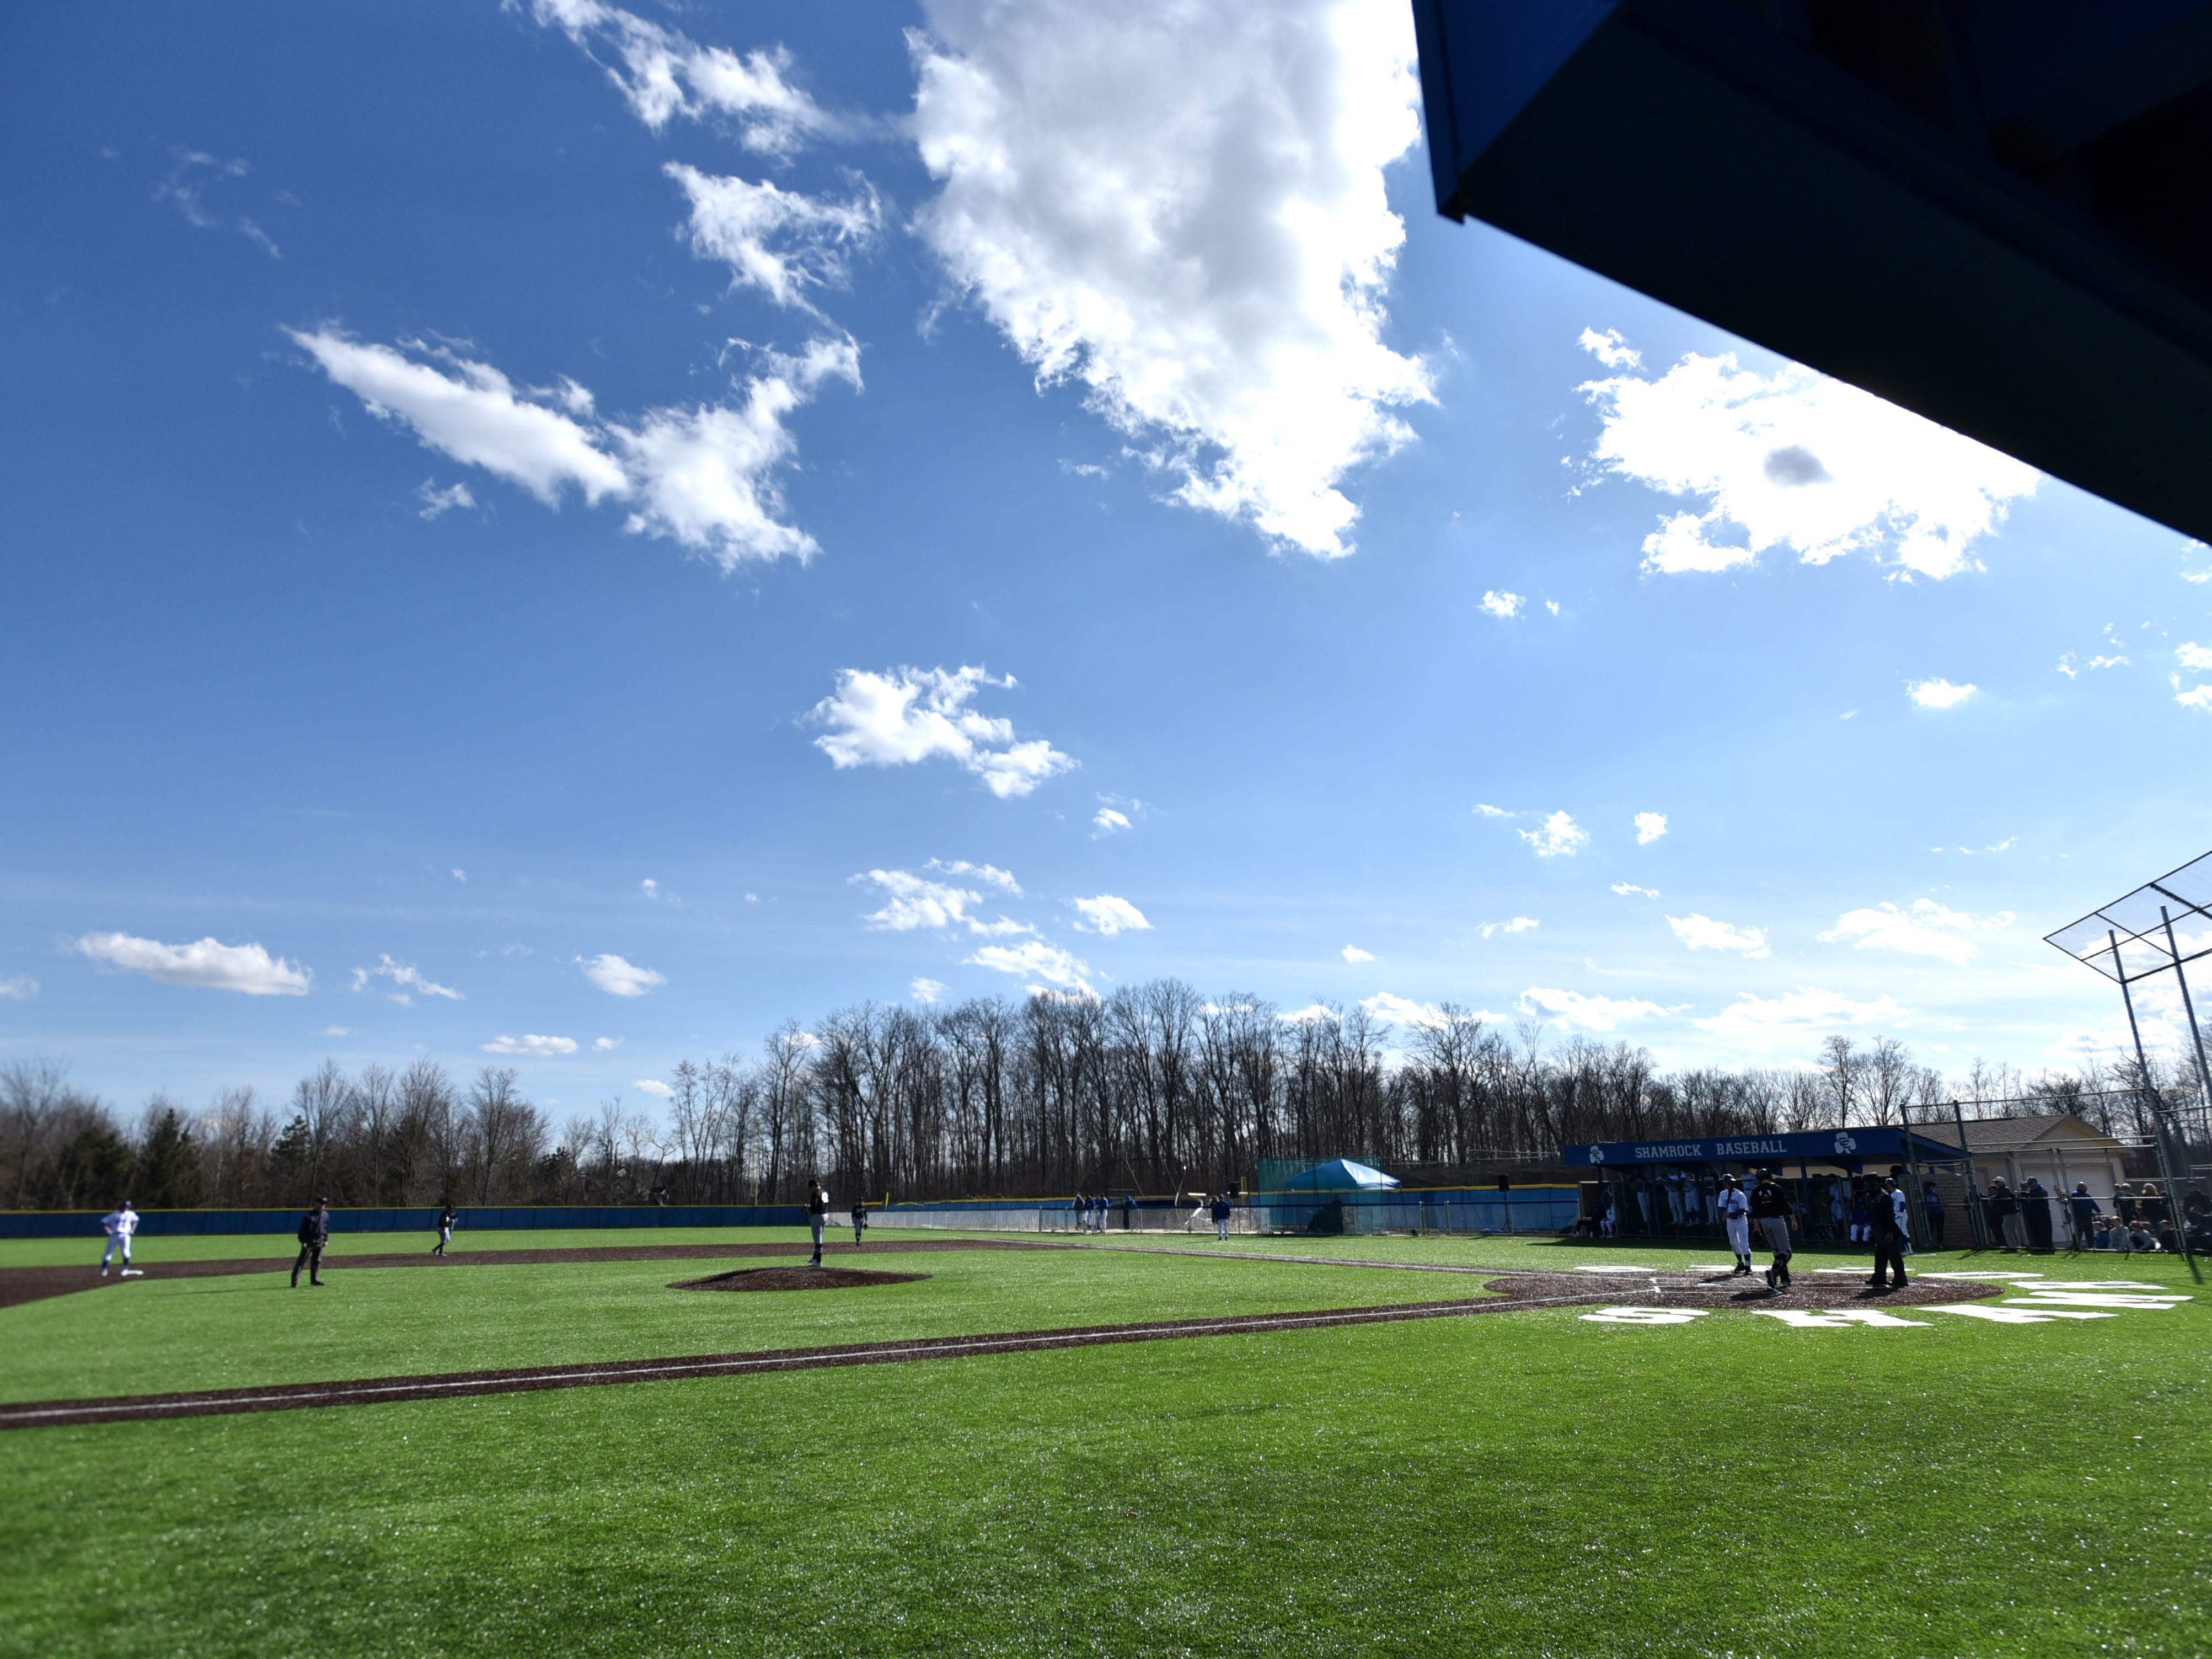 April 3rd's home game at Detroit Catholic Central was played under mostly sunny skies and temperatures in the upper 40s.